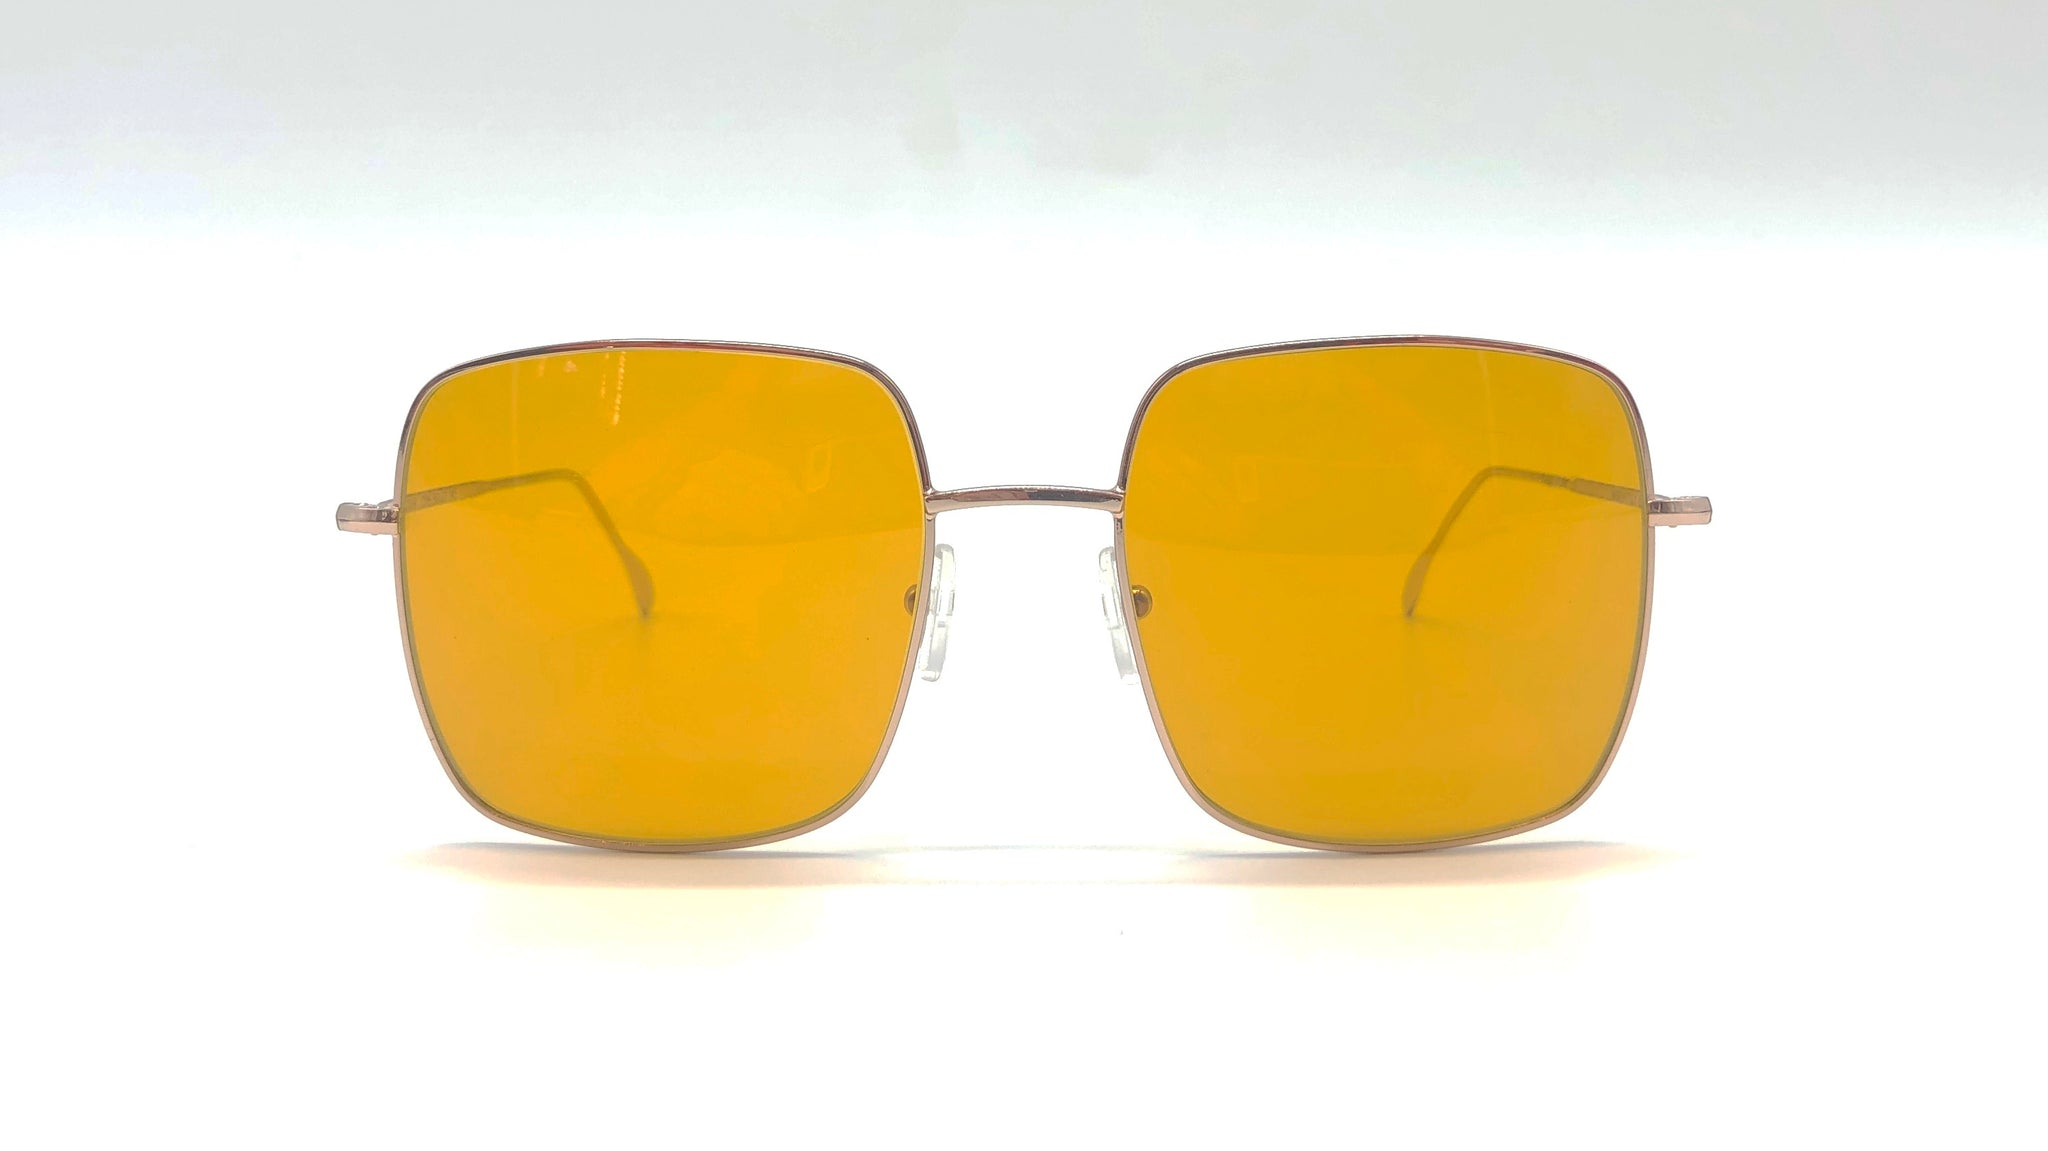 STAR metal gold square-shaped yellow lenses sunglasses